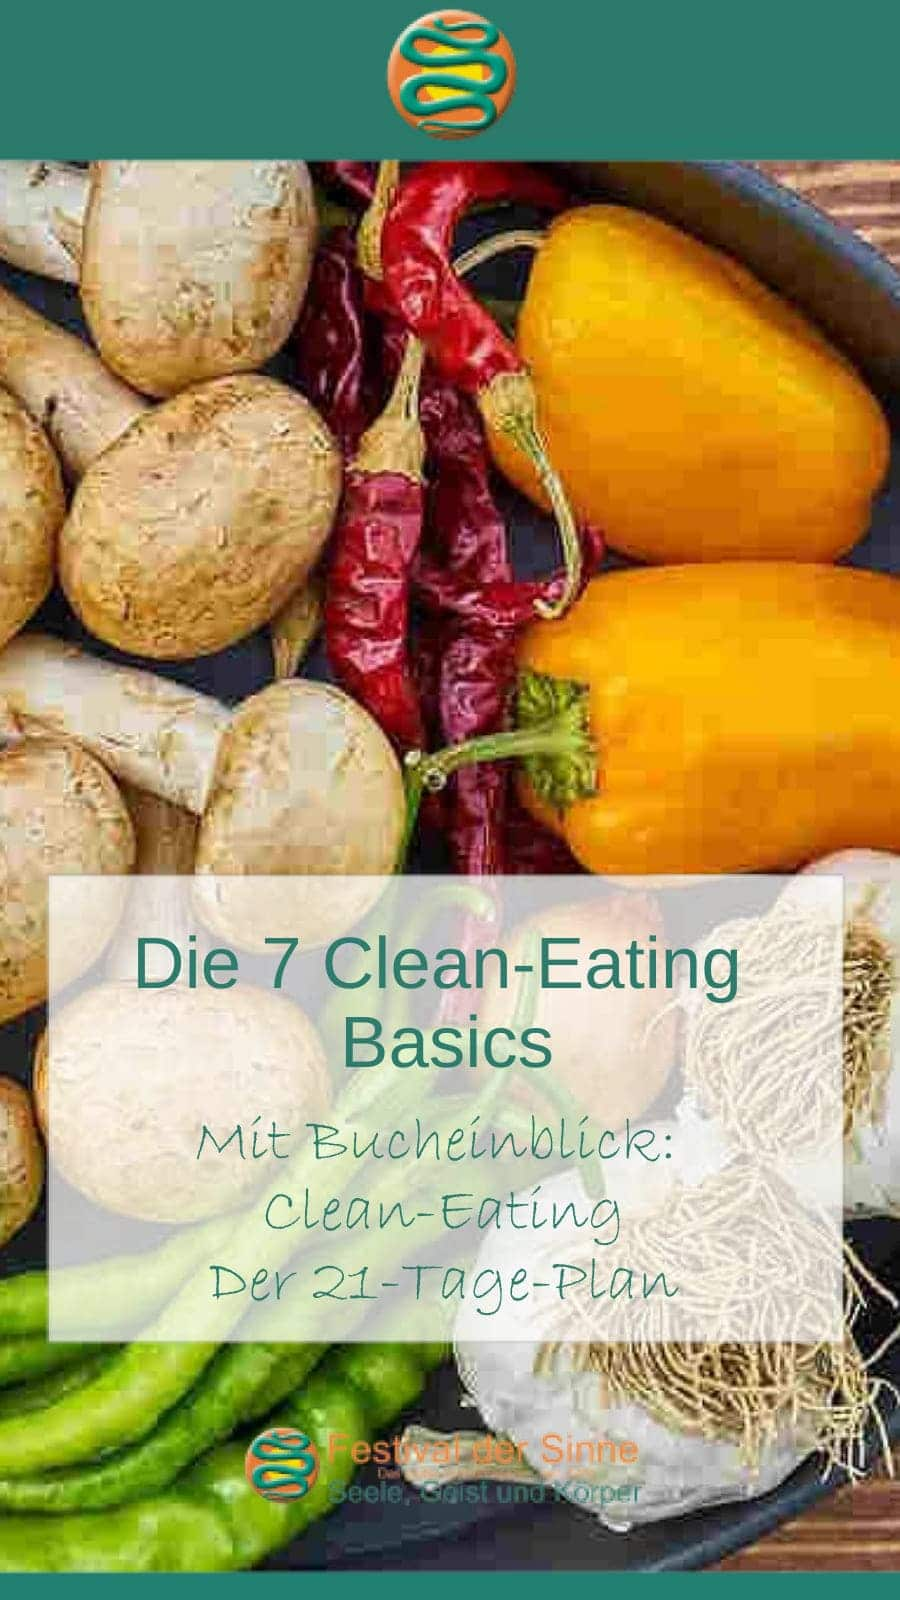 DIe 7 #Cleaneating #Basics #Buchtipp (Pin)